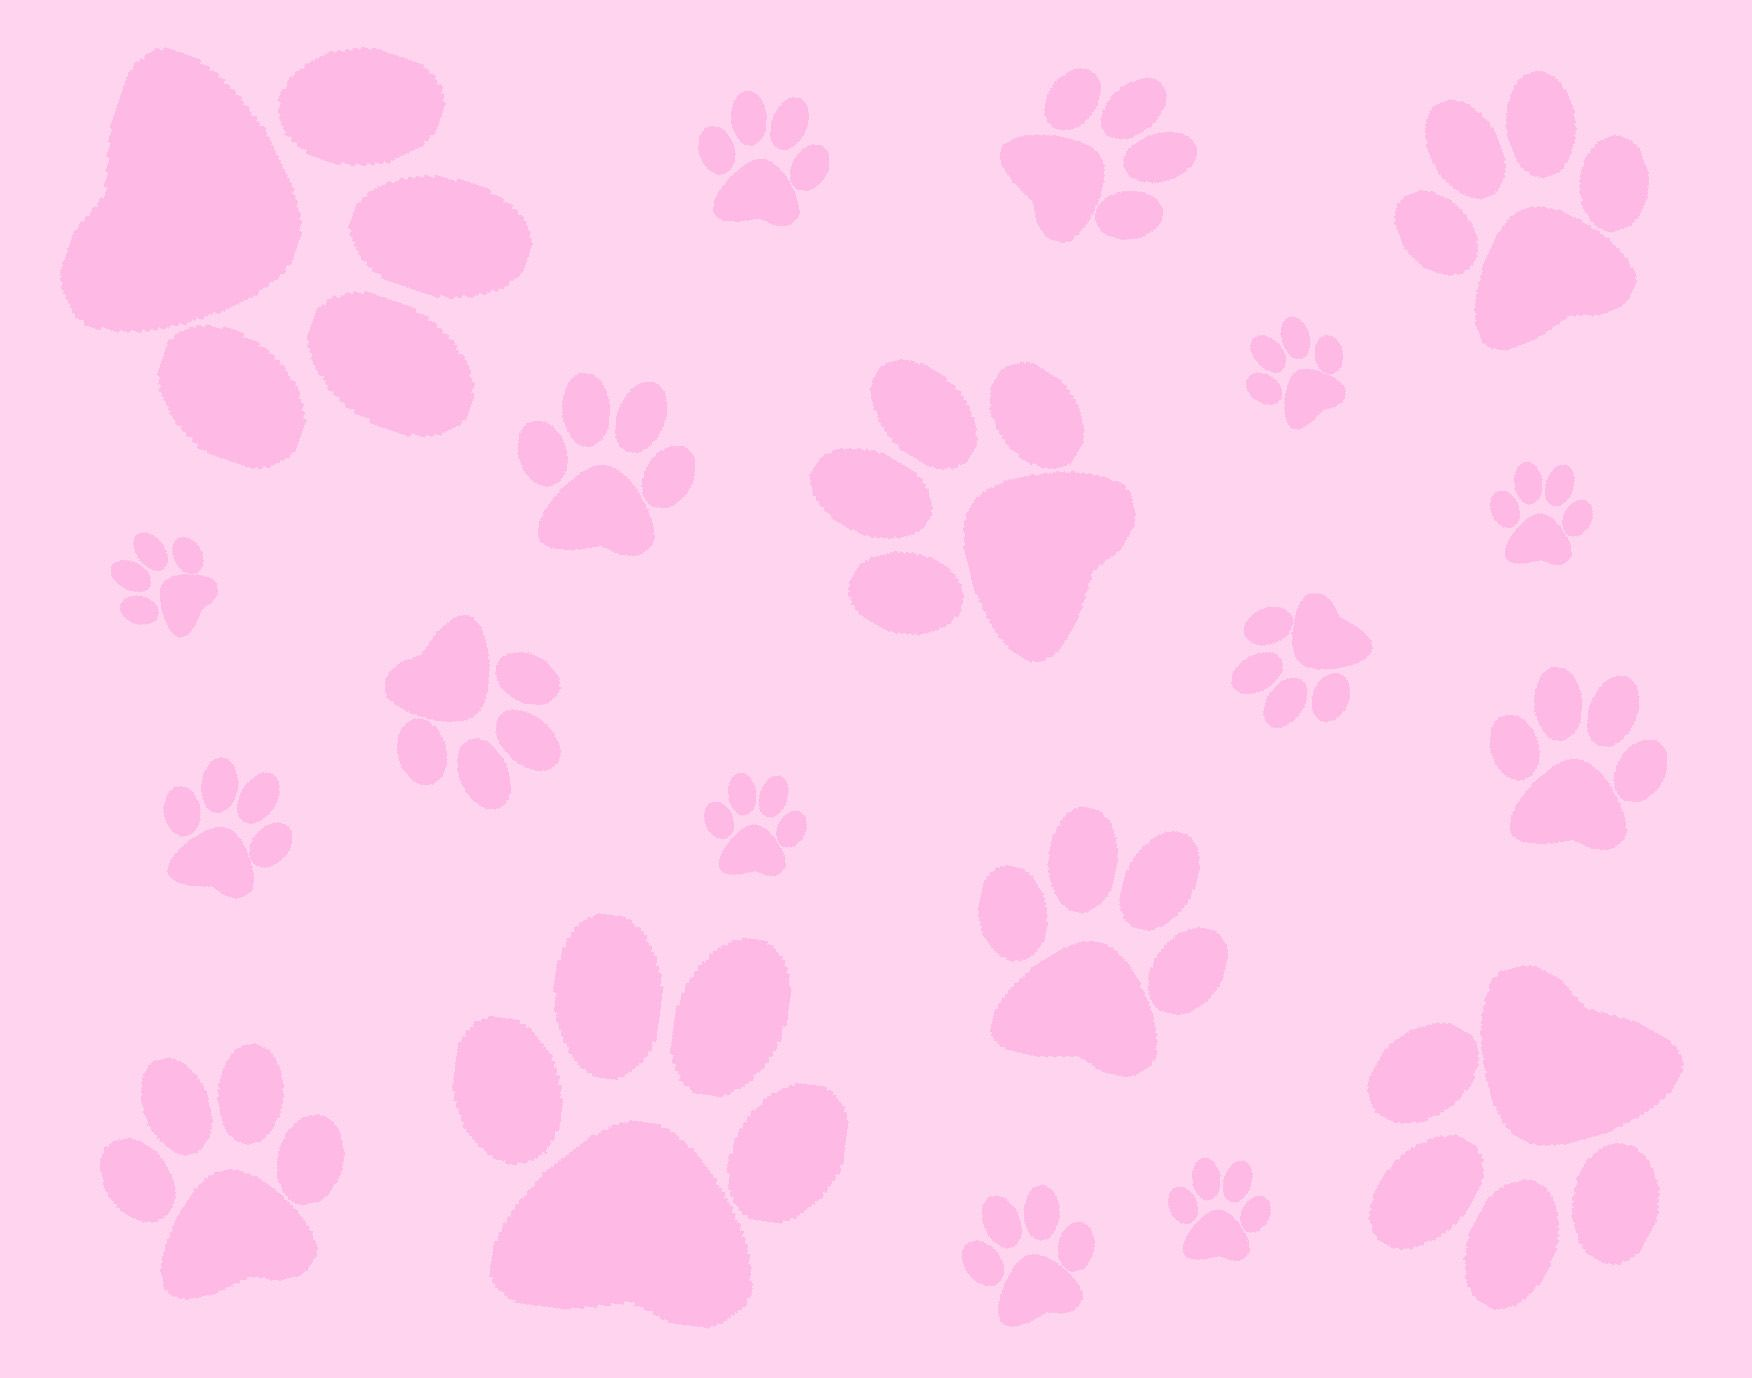 Paw Print Wallpapers Top Free Paw Print Backgrounds Wallpaperaccess